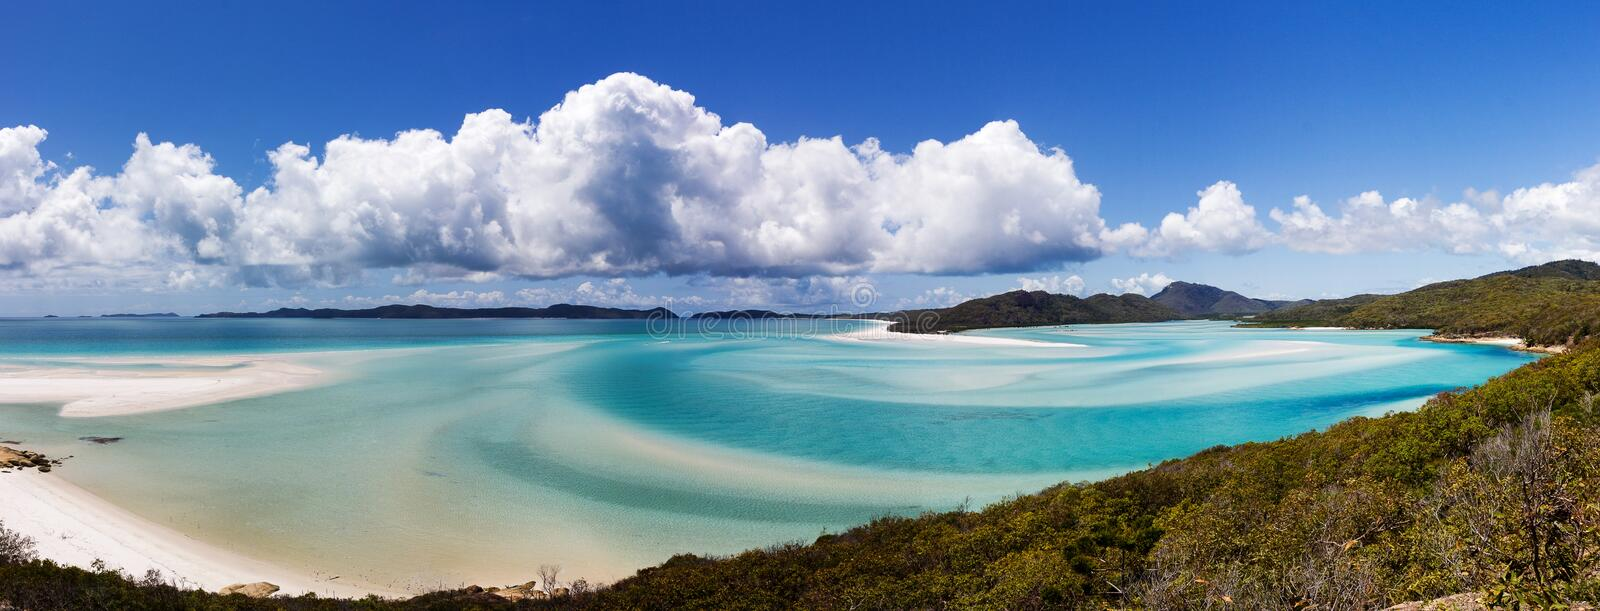 Panorama Whiteheaven plaża, Whitsunday wyspa, Queensland, Australia obrazy royalty free